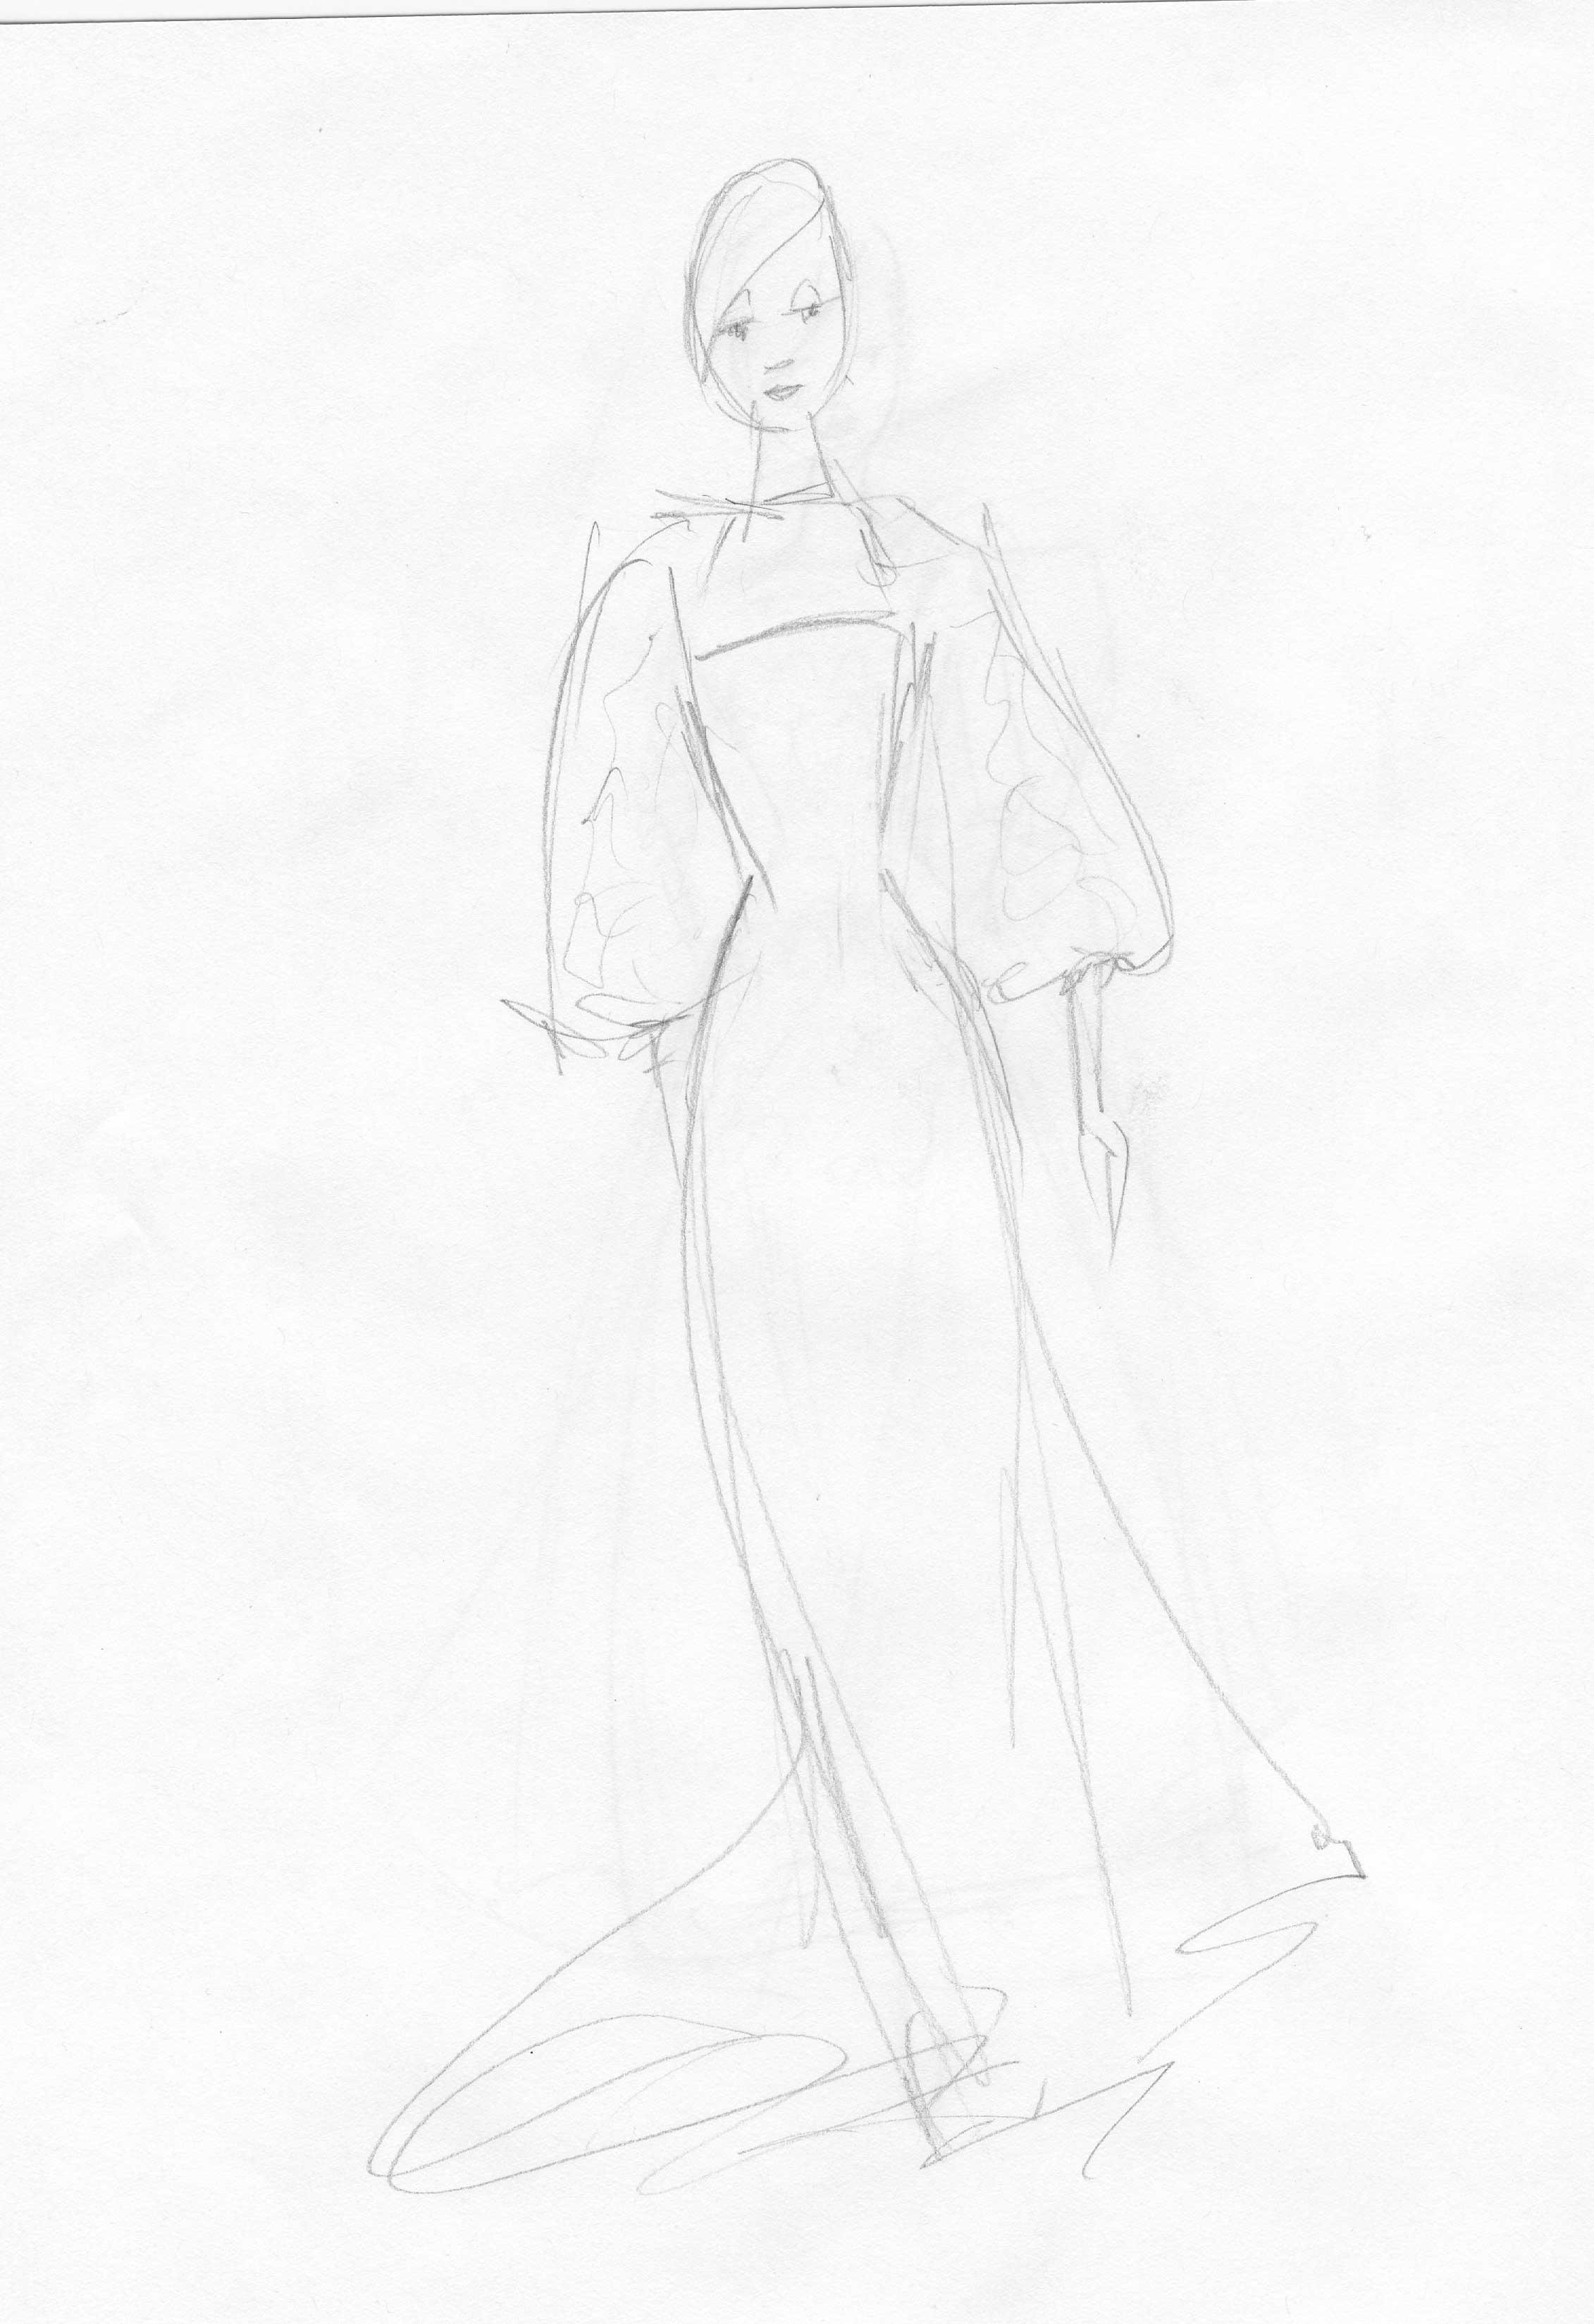 *(SKETCHES)* a walk down memory lane - image 1 - student project